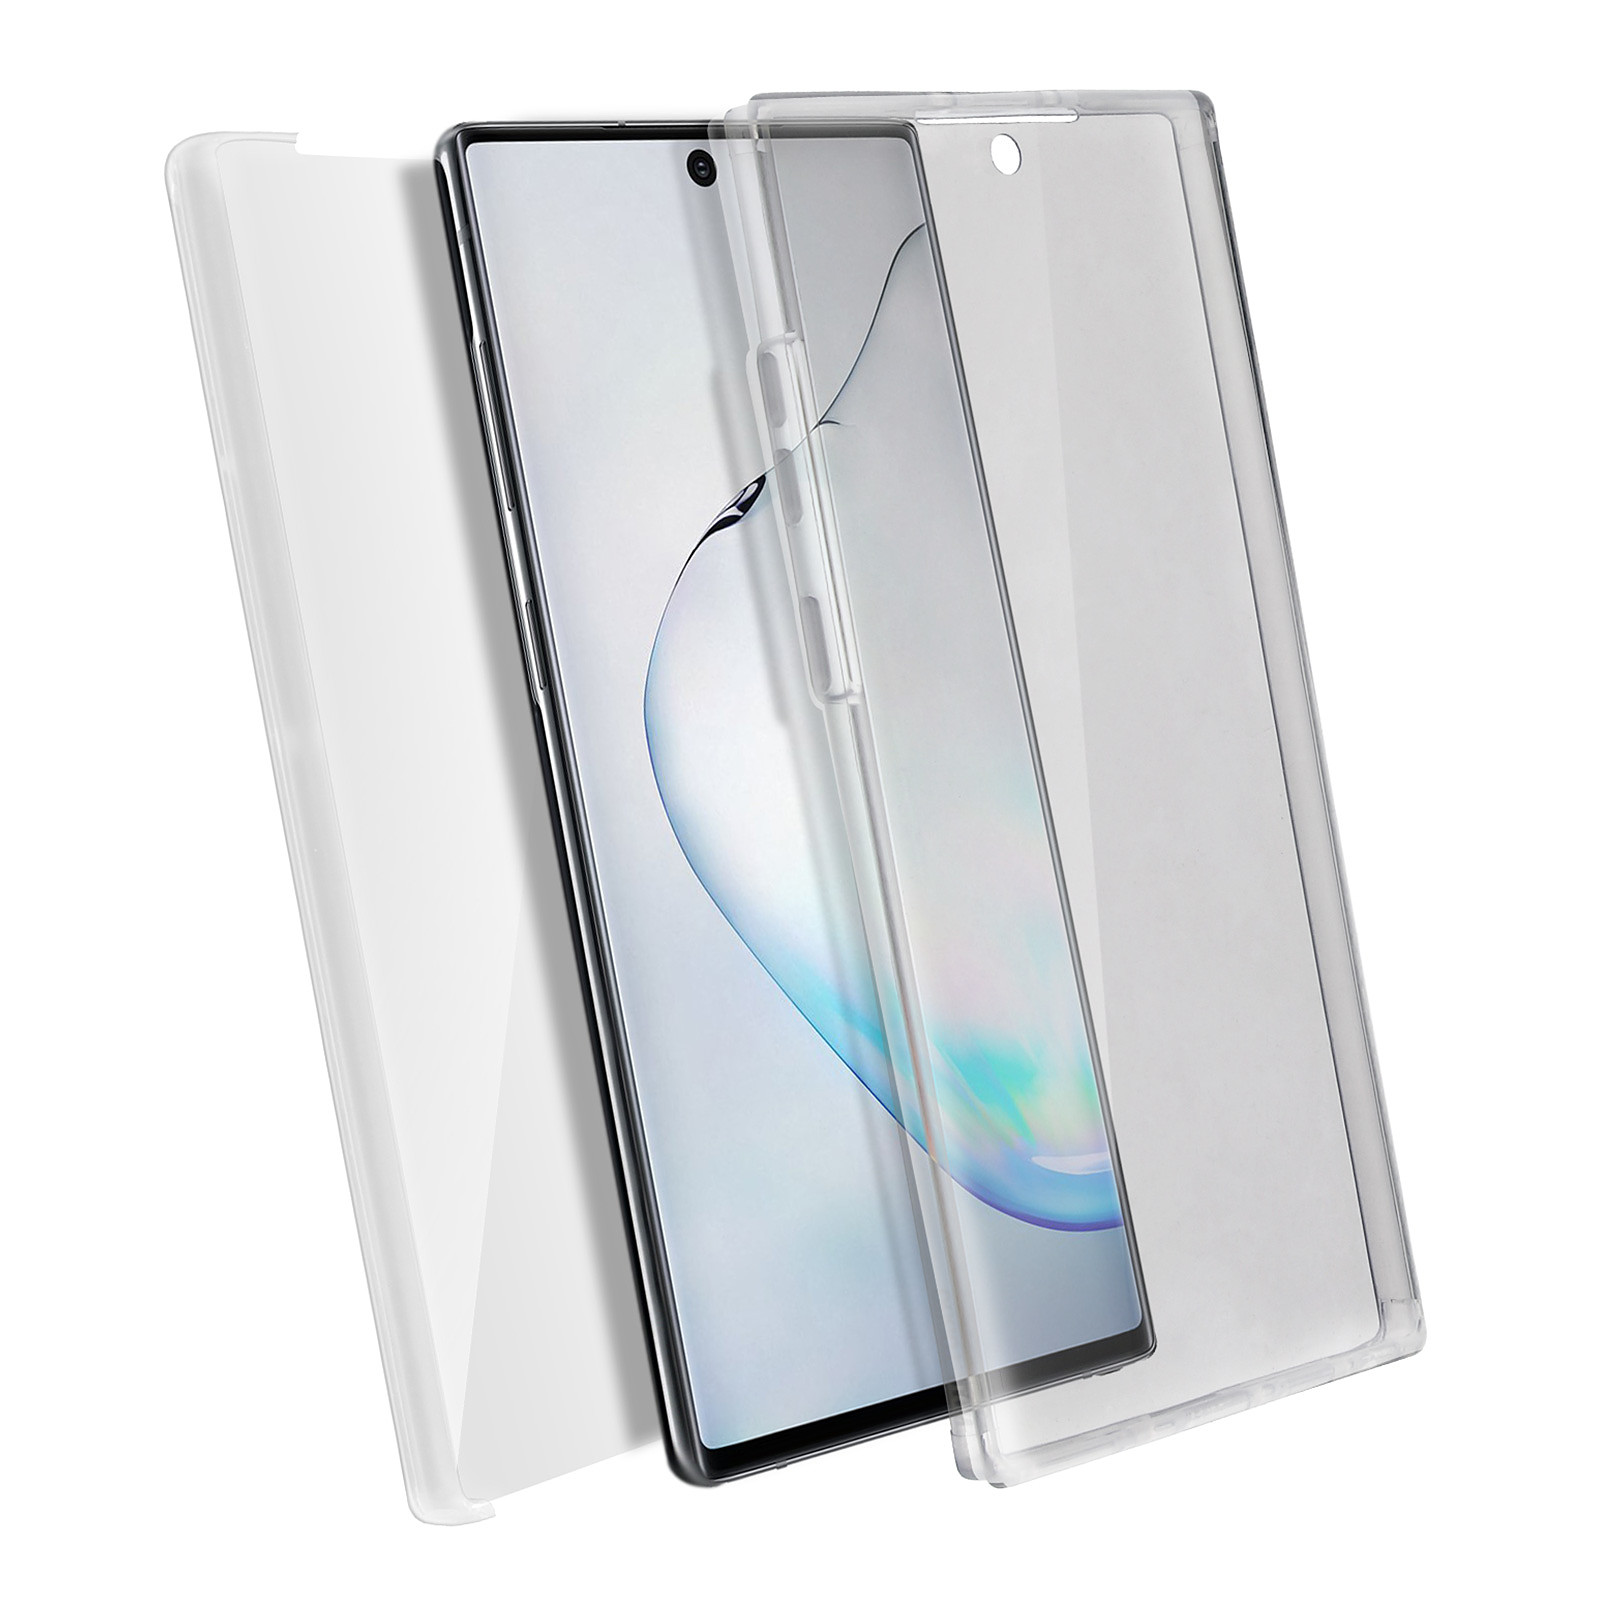 Avizar Coque Transparent pour Samsung Galaxy Note 10 Plus